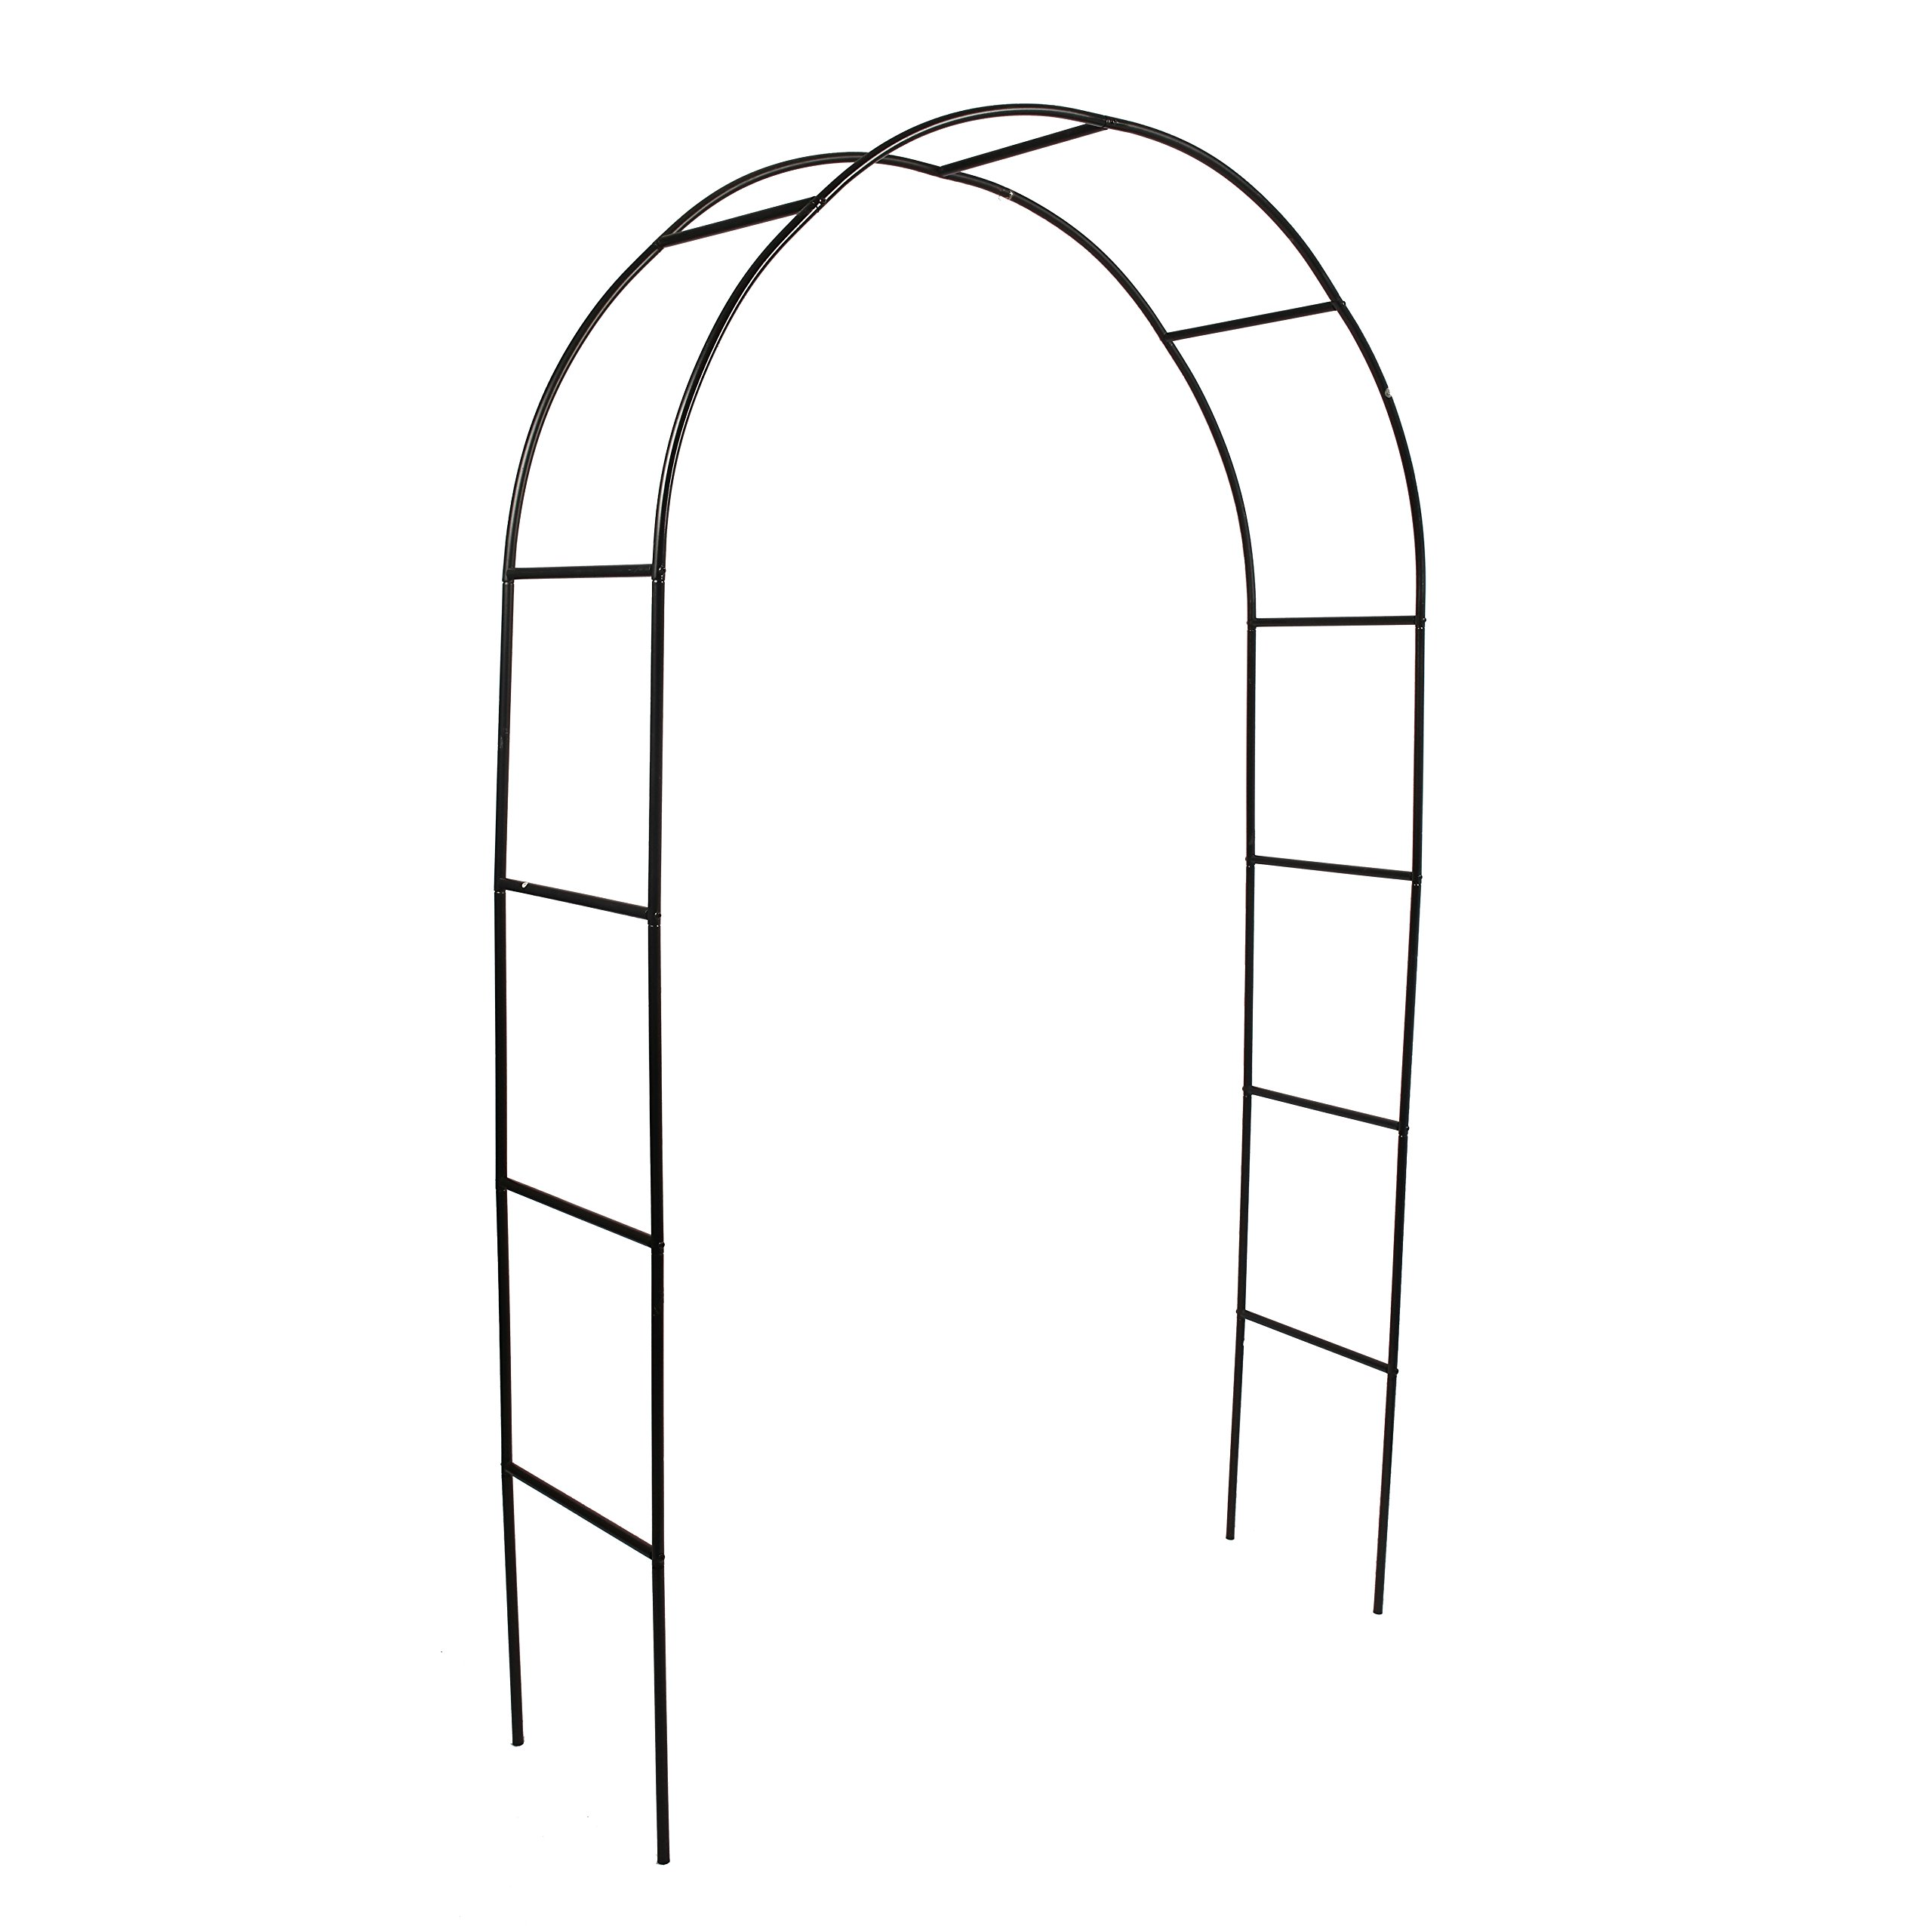 Better Garden Steel Garden Arch, 7'8'' High x 4'5'' Wide, Garden Arbor for Various Climbing Plant, Outdoor Garden Lawn Backyard